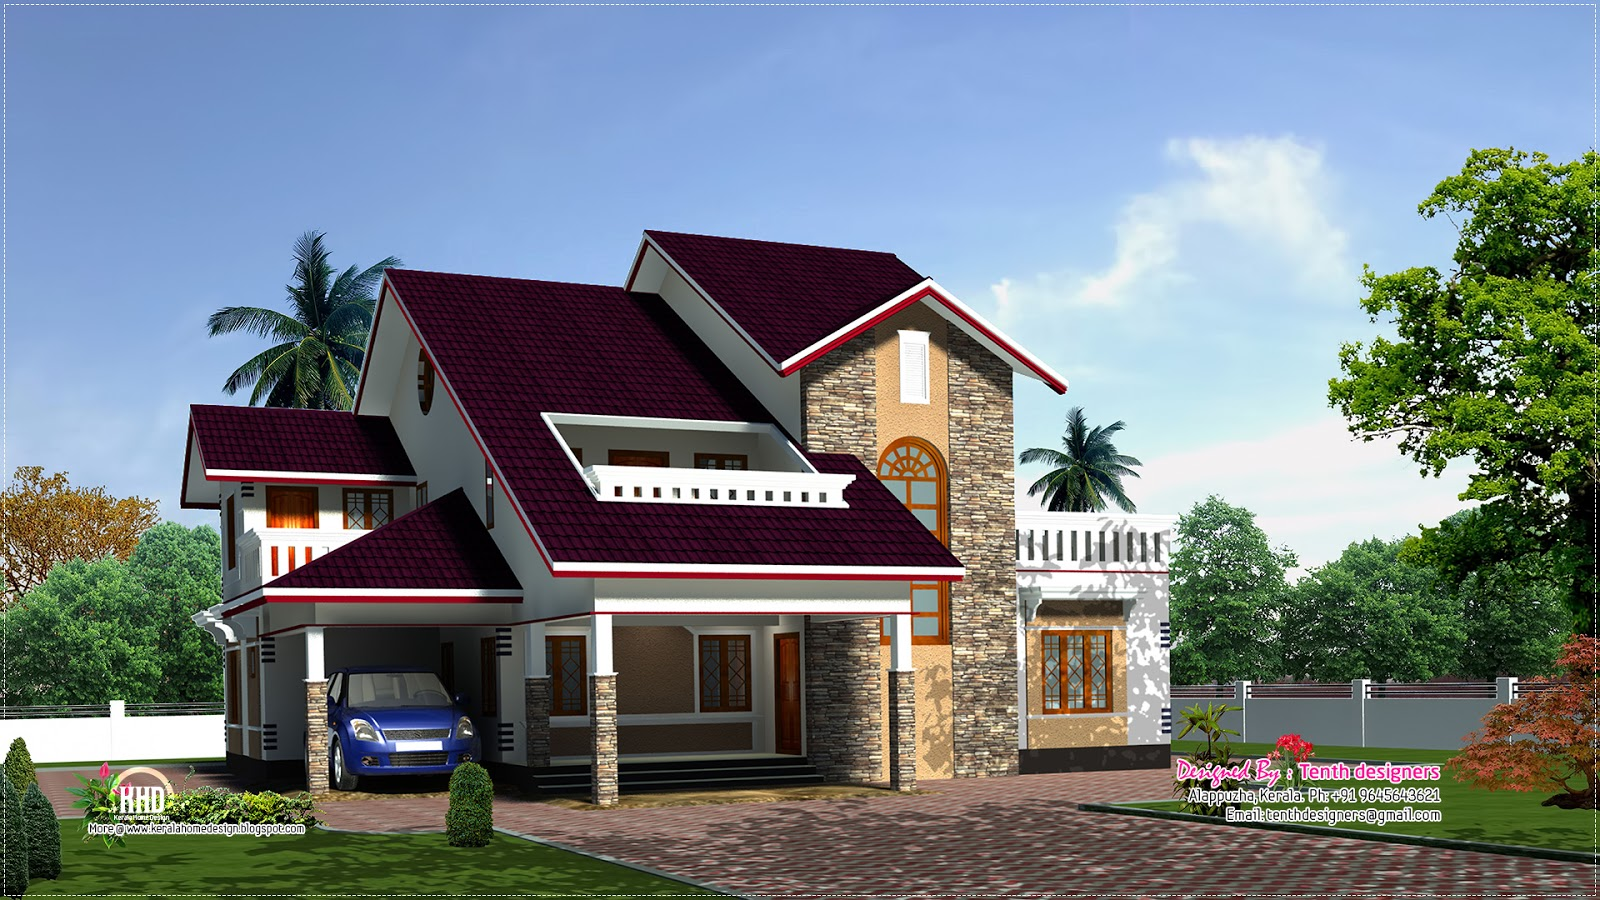 3200 luxury house plan elevation house design plans Luxery home plans